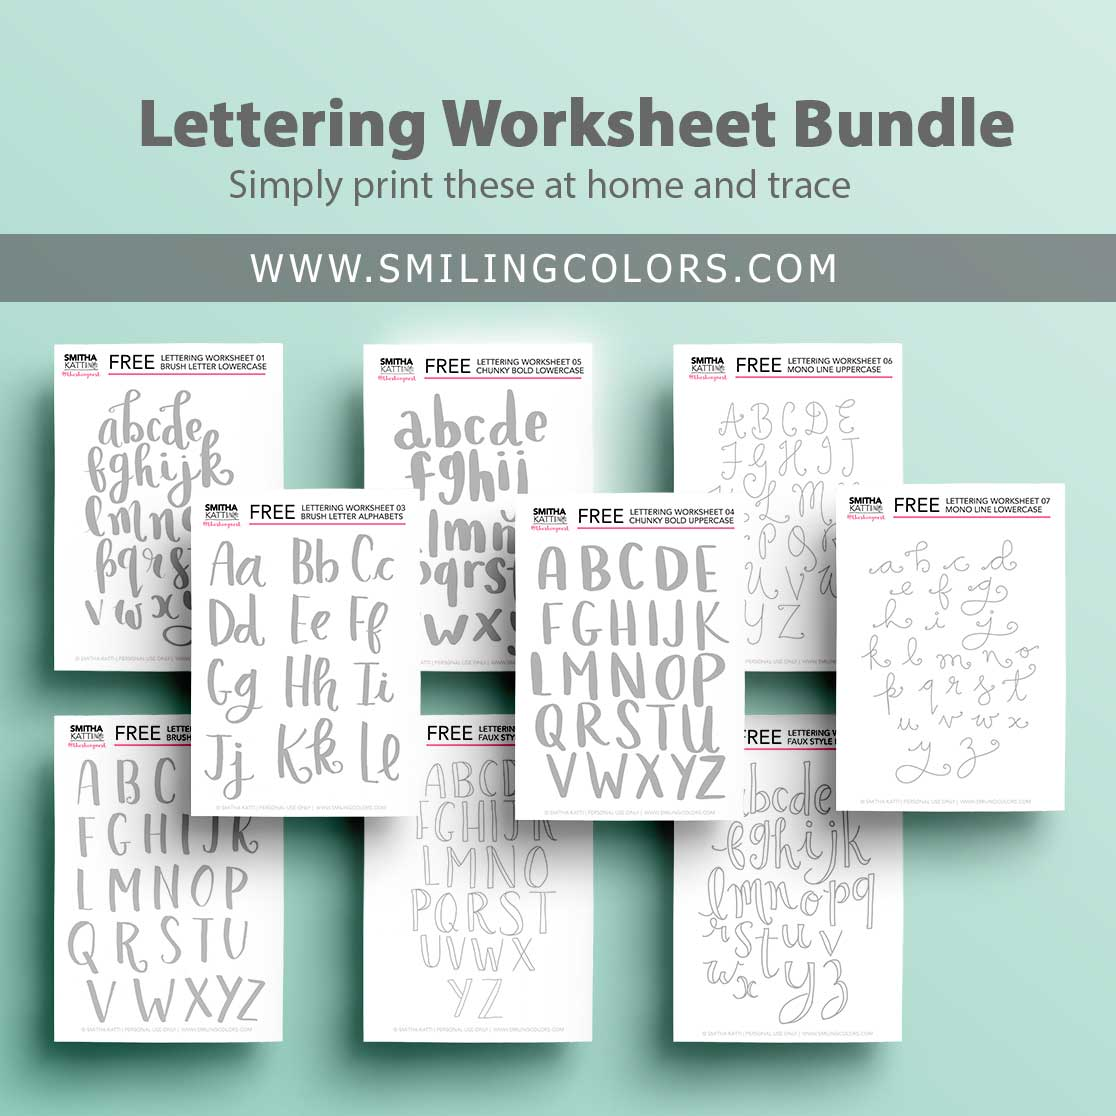 graphic regarding Printable Lettering Free known as Lettering worksheets: 9 Cost-free printable prepare sheets towards hint